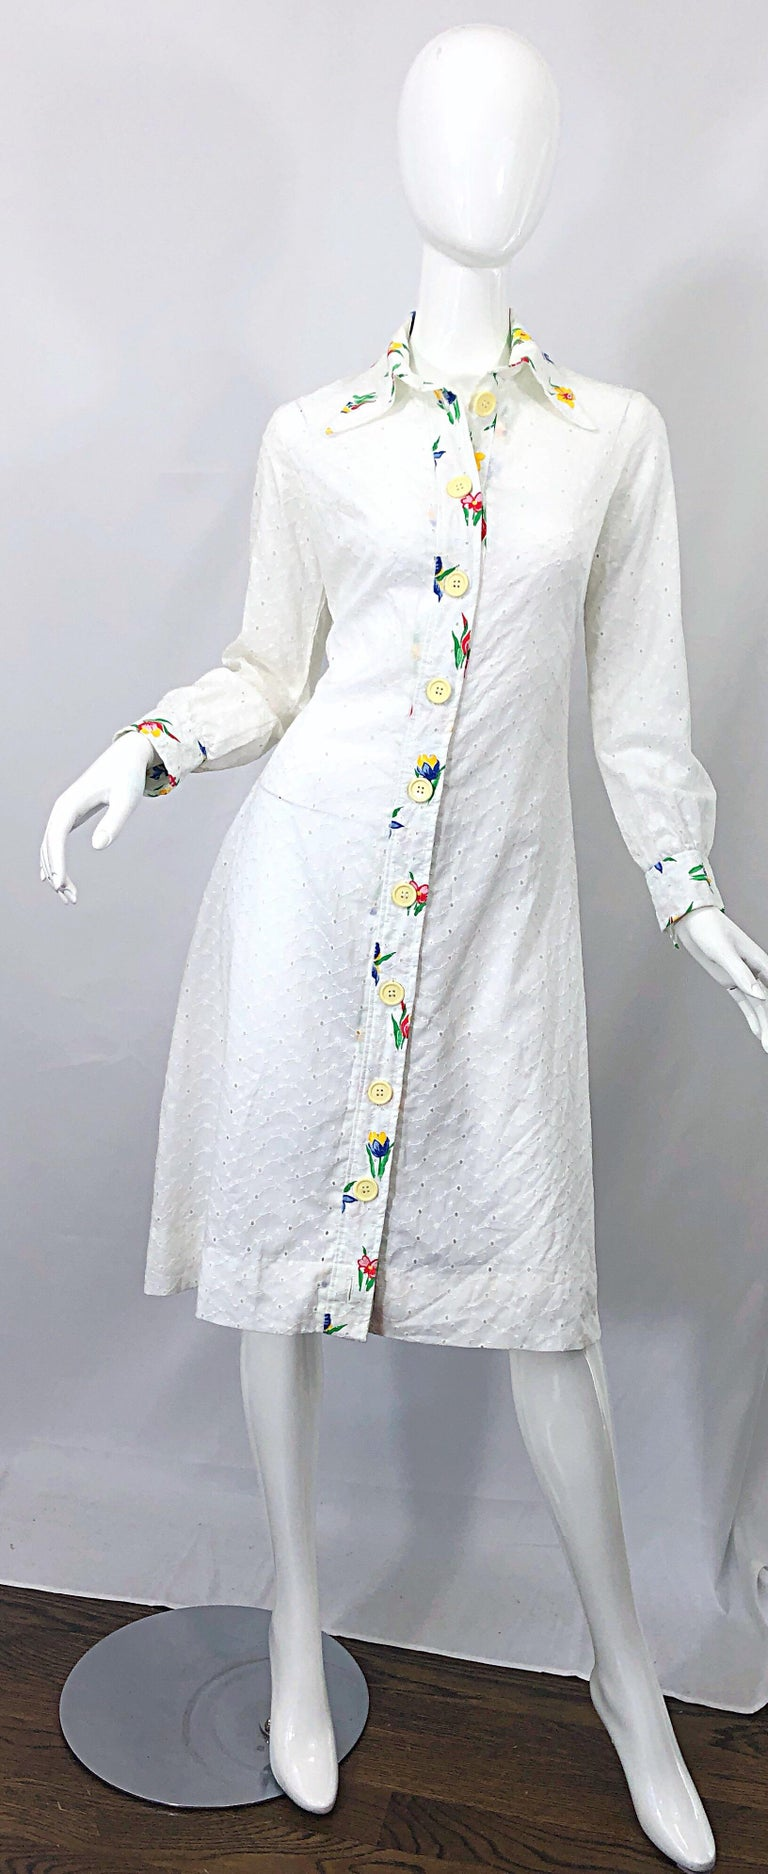 Chic 1970s JOSEPH MAGNIN white cotton eyelet embrodiered long sleeve shirt dress! Features a stark white color with embroidered flowers down the front center, collar, and sleeve cuffs. Vibrant colors of red, blue, yellow, green and orange. Buttons